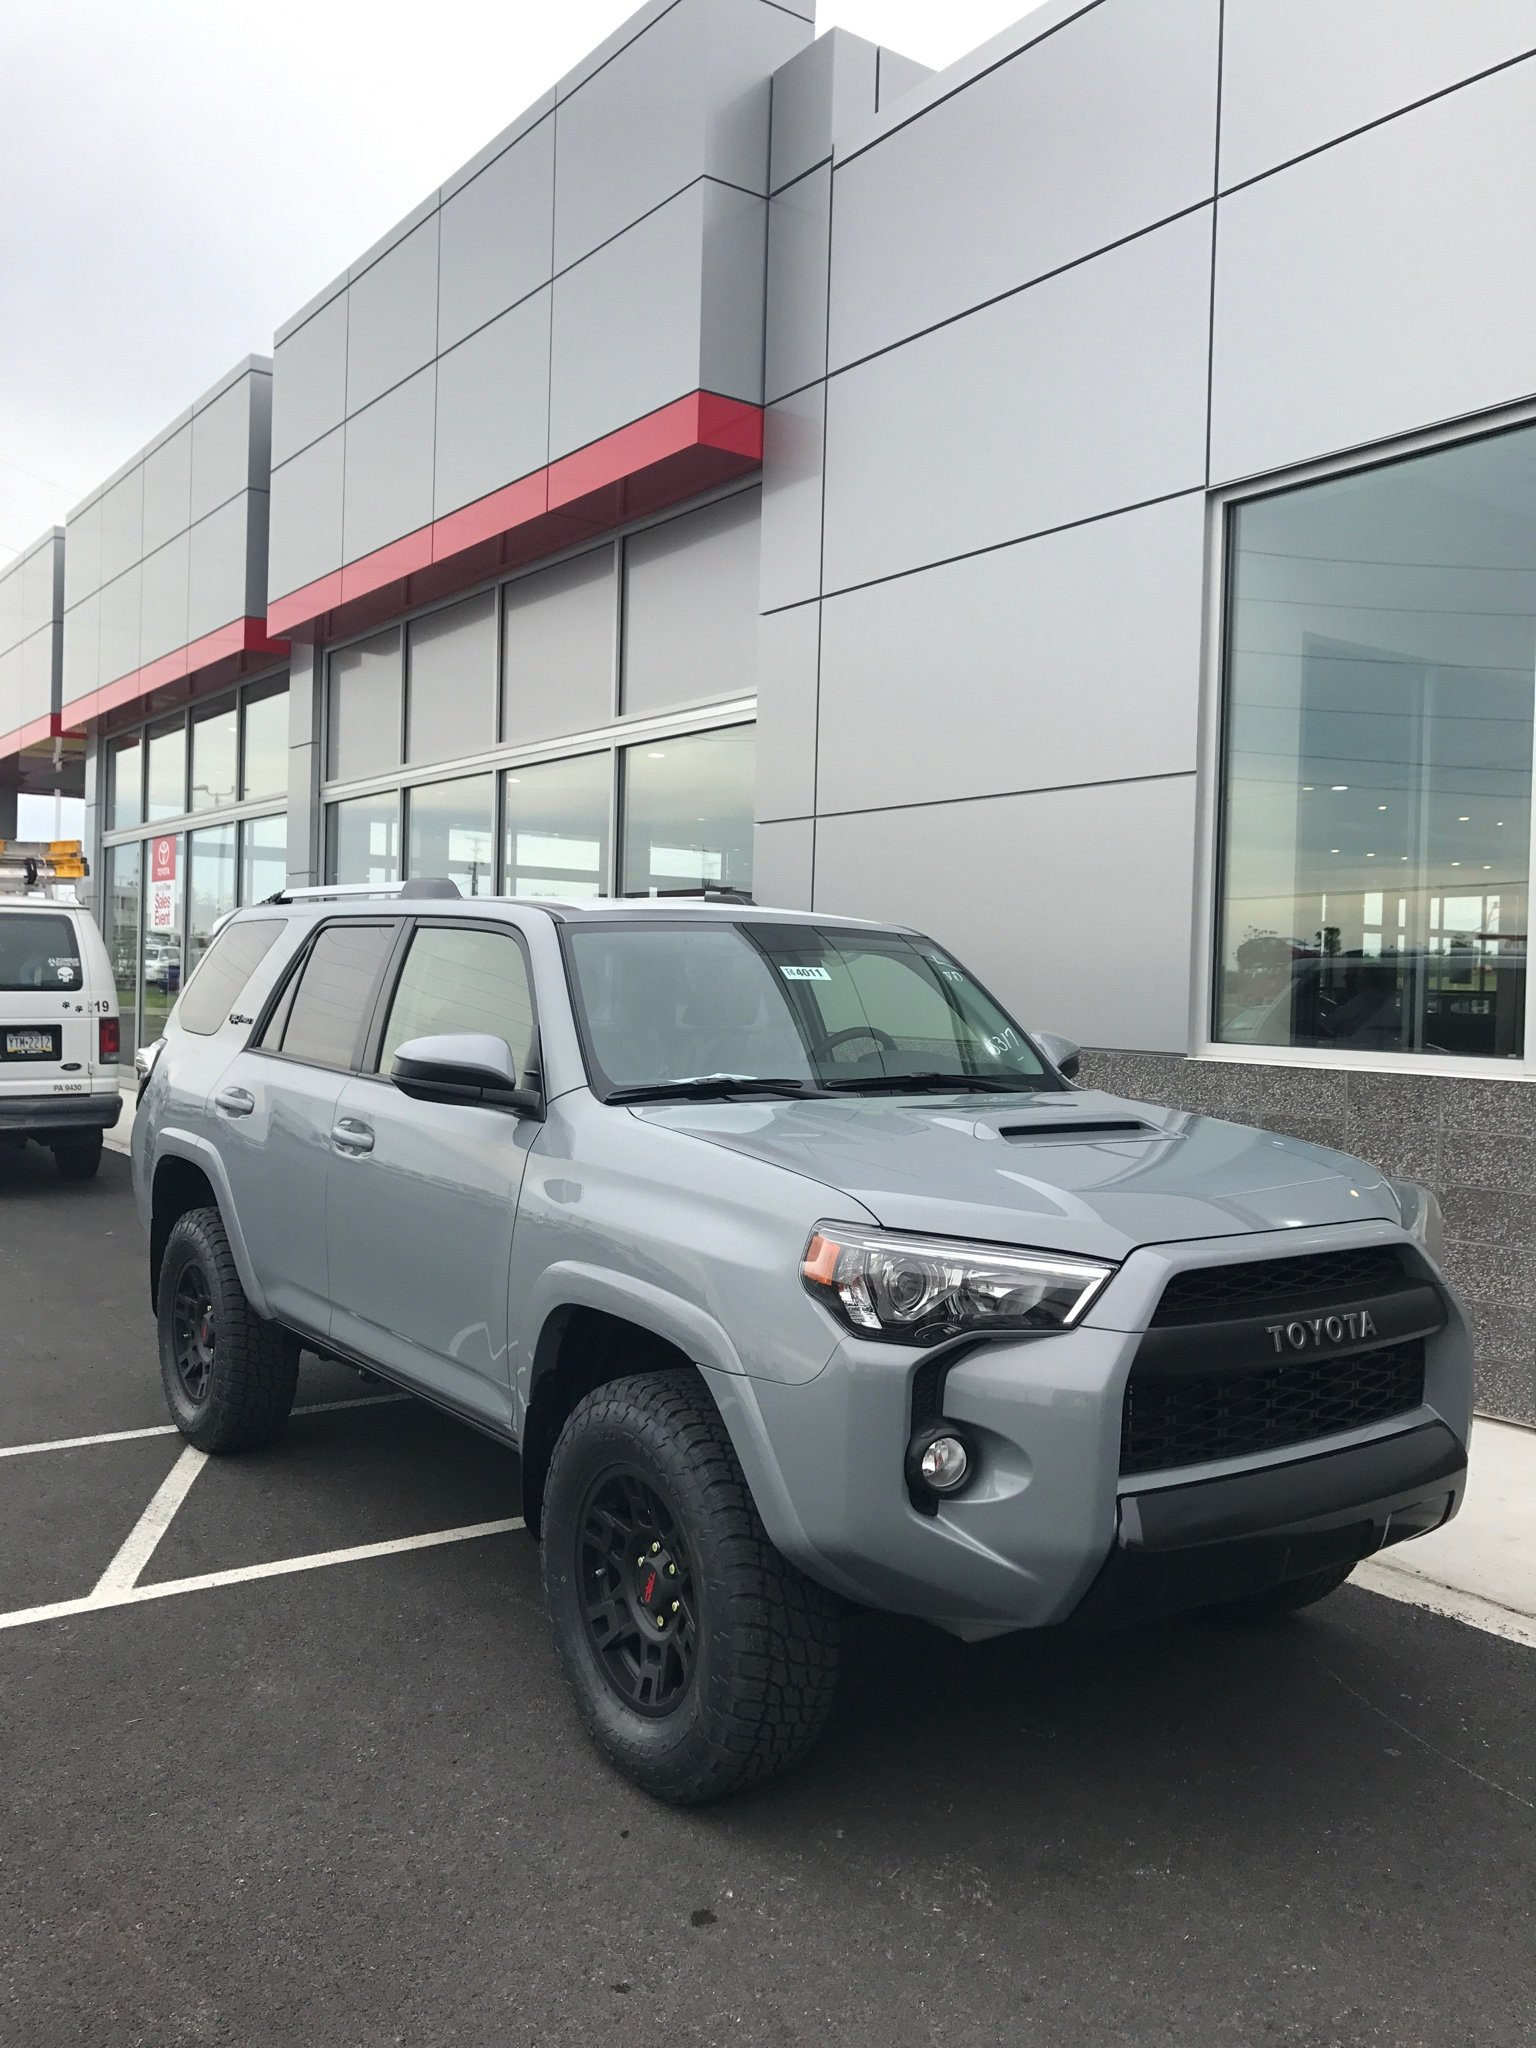 2017 Toyota Tacoma Trd Pro >> 2018 TRD Pro Colors...Cement? - Page 3 - Toyota 4Runner ...